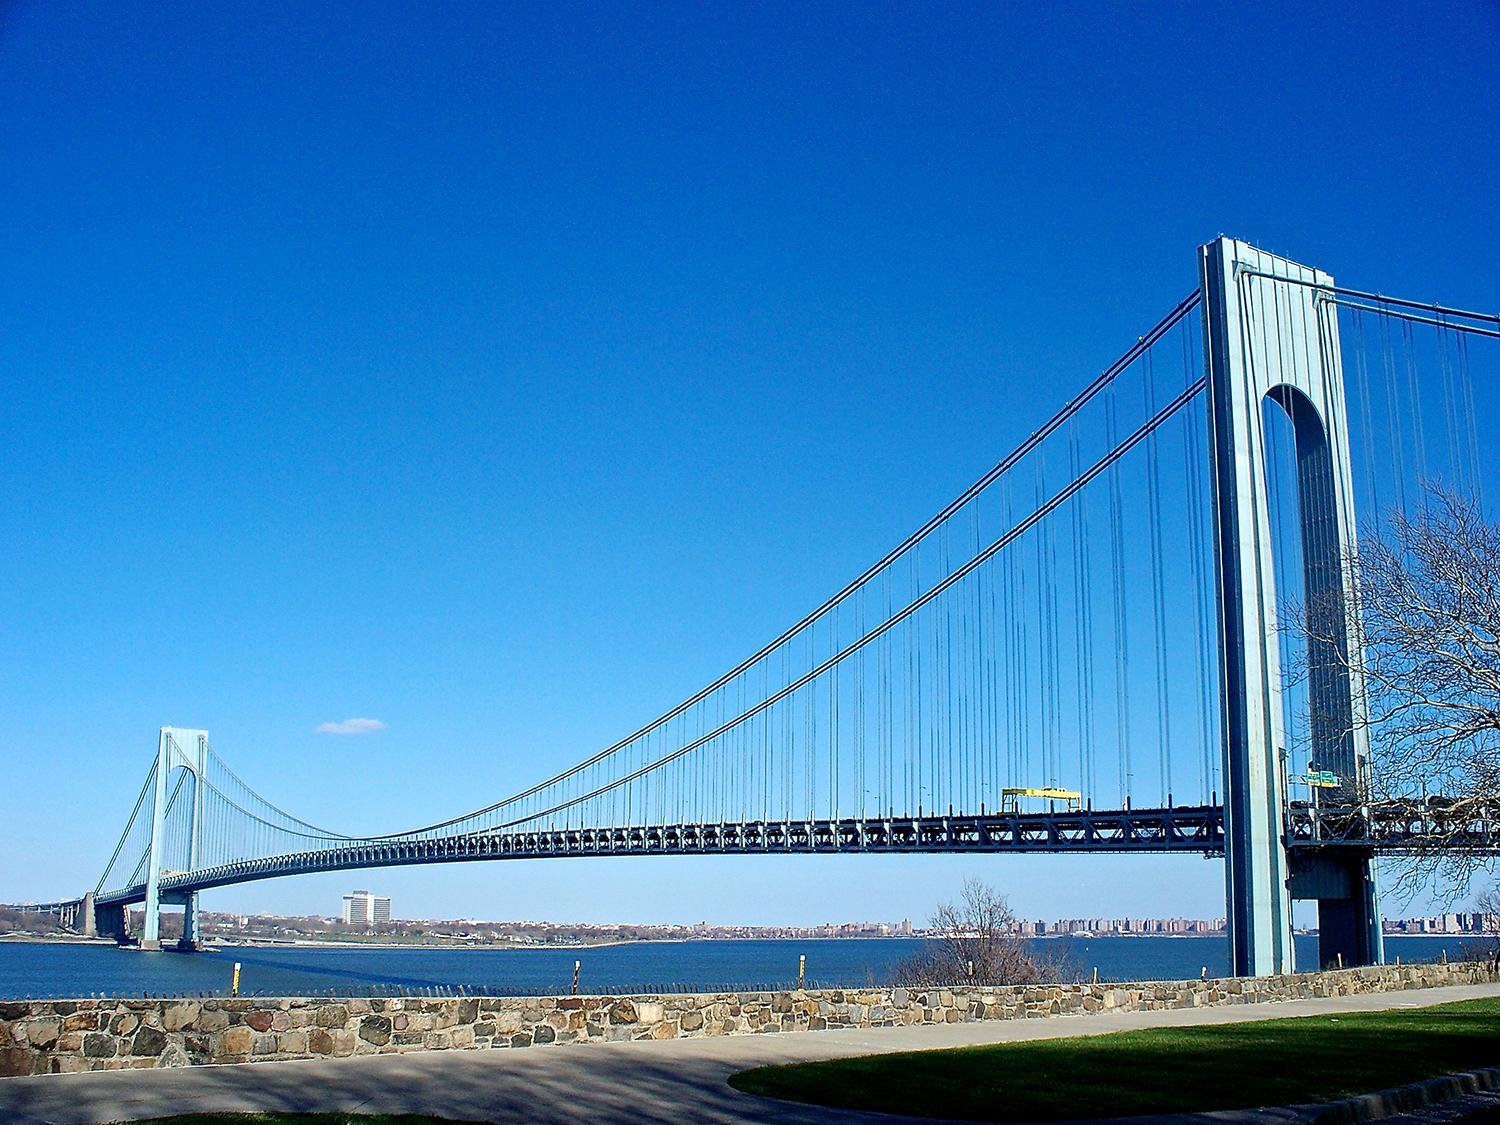 The Verrazano Bridge